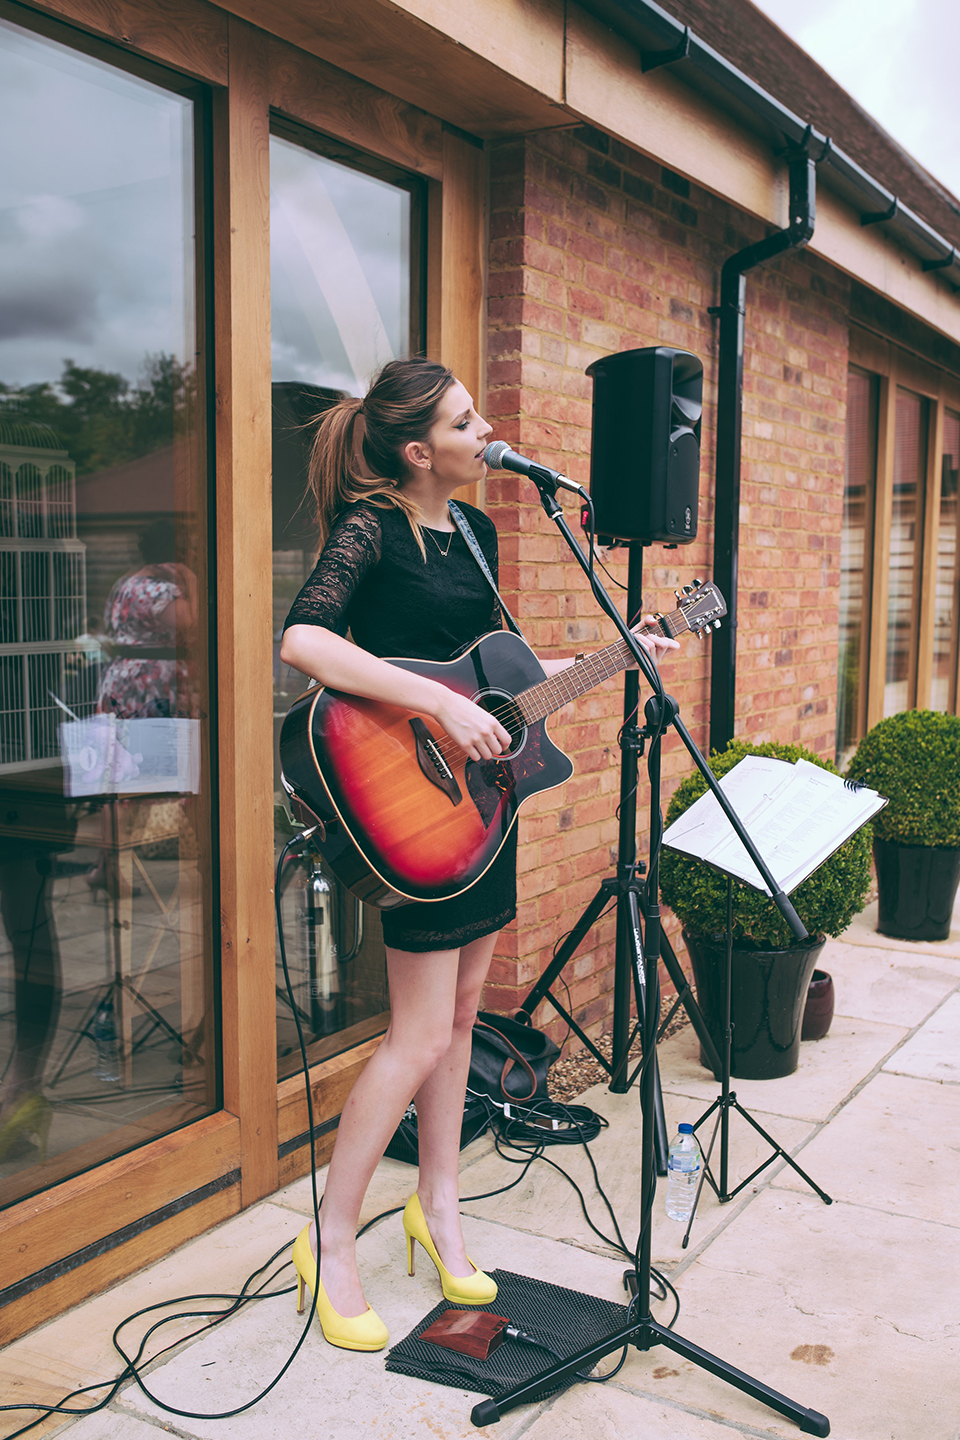 For their wedding entertainment at Bassmead Manor Barns the newlyweds had an acoustic singer